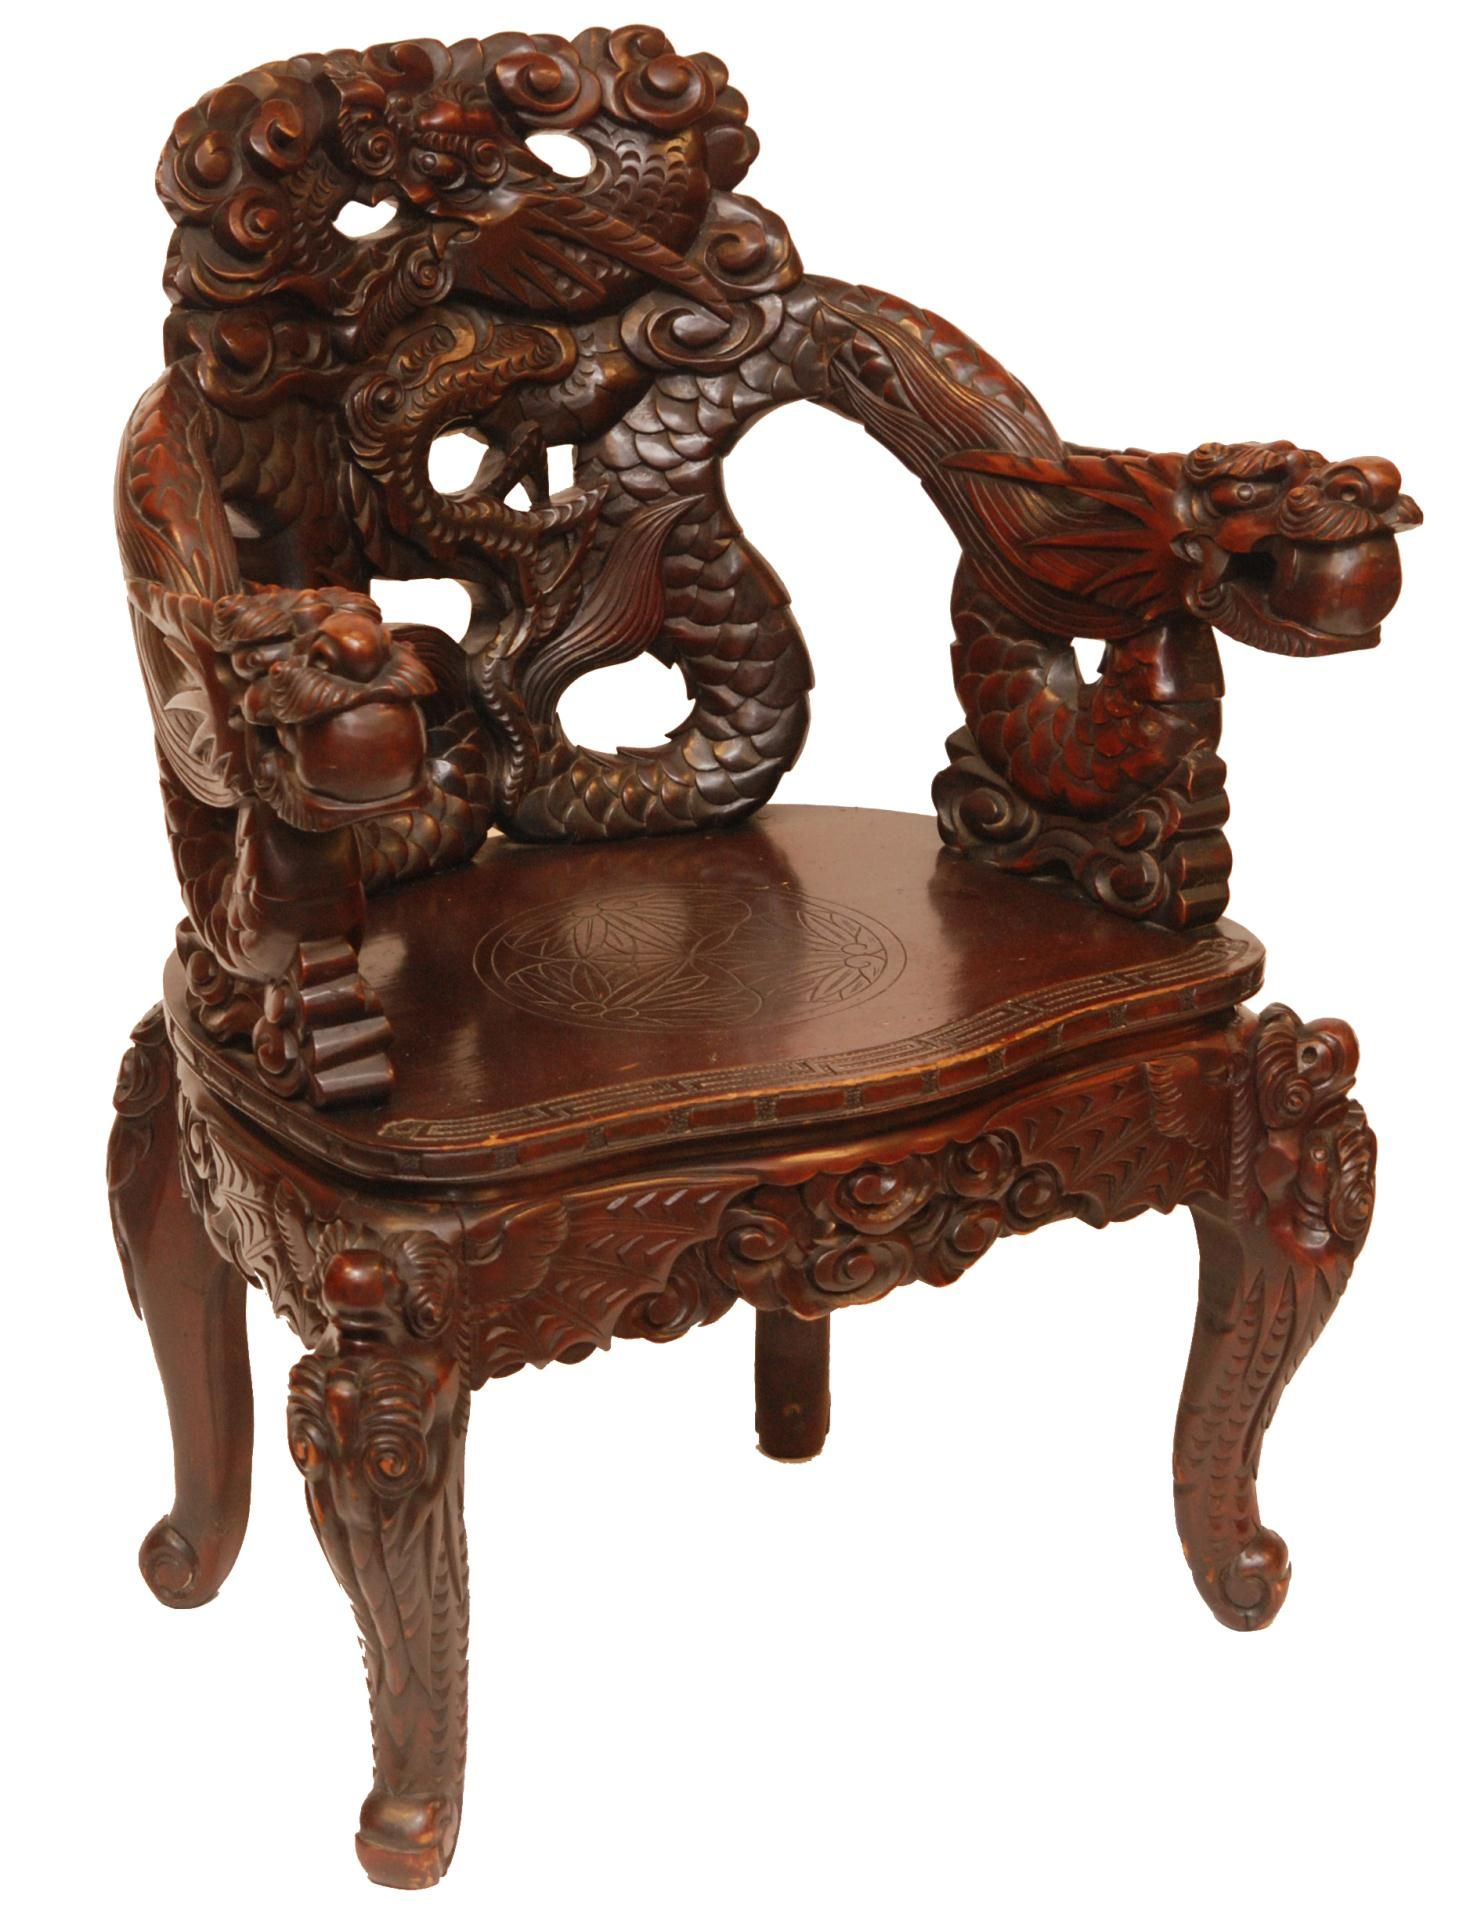 Chinese Wood Carvings 557 Carved Wooden Dragons Chair Hand And Fully